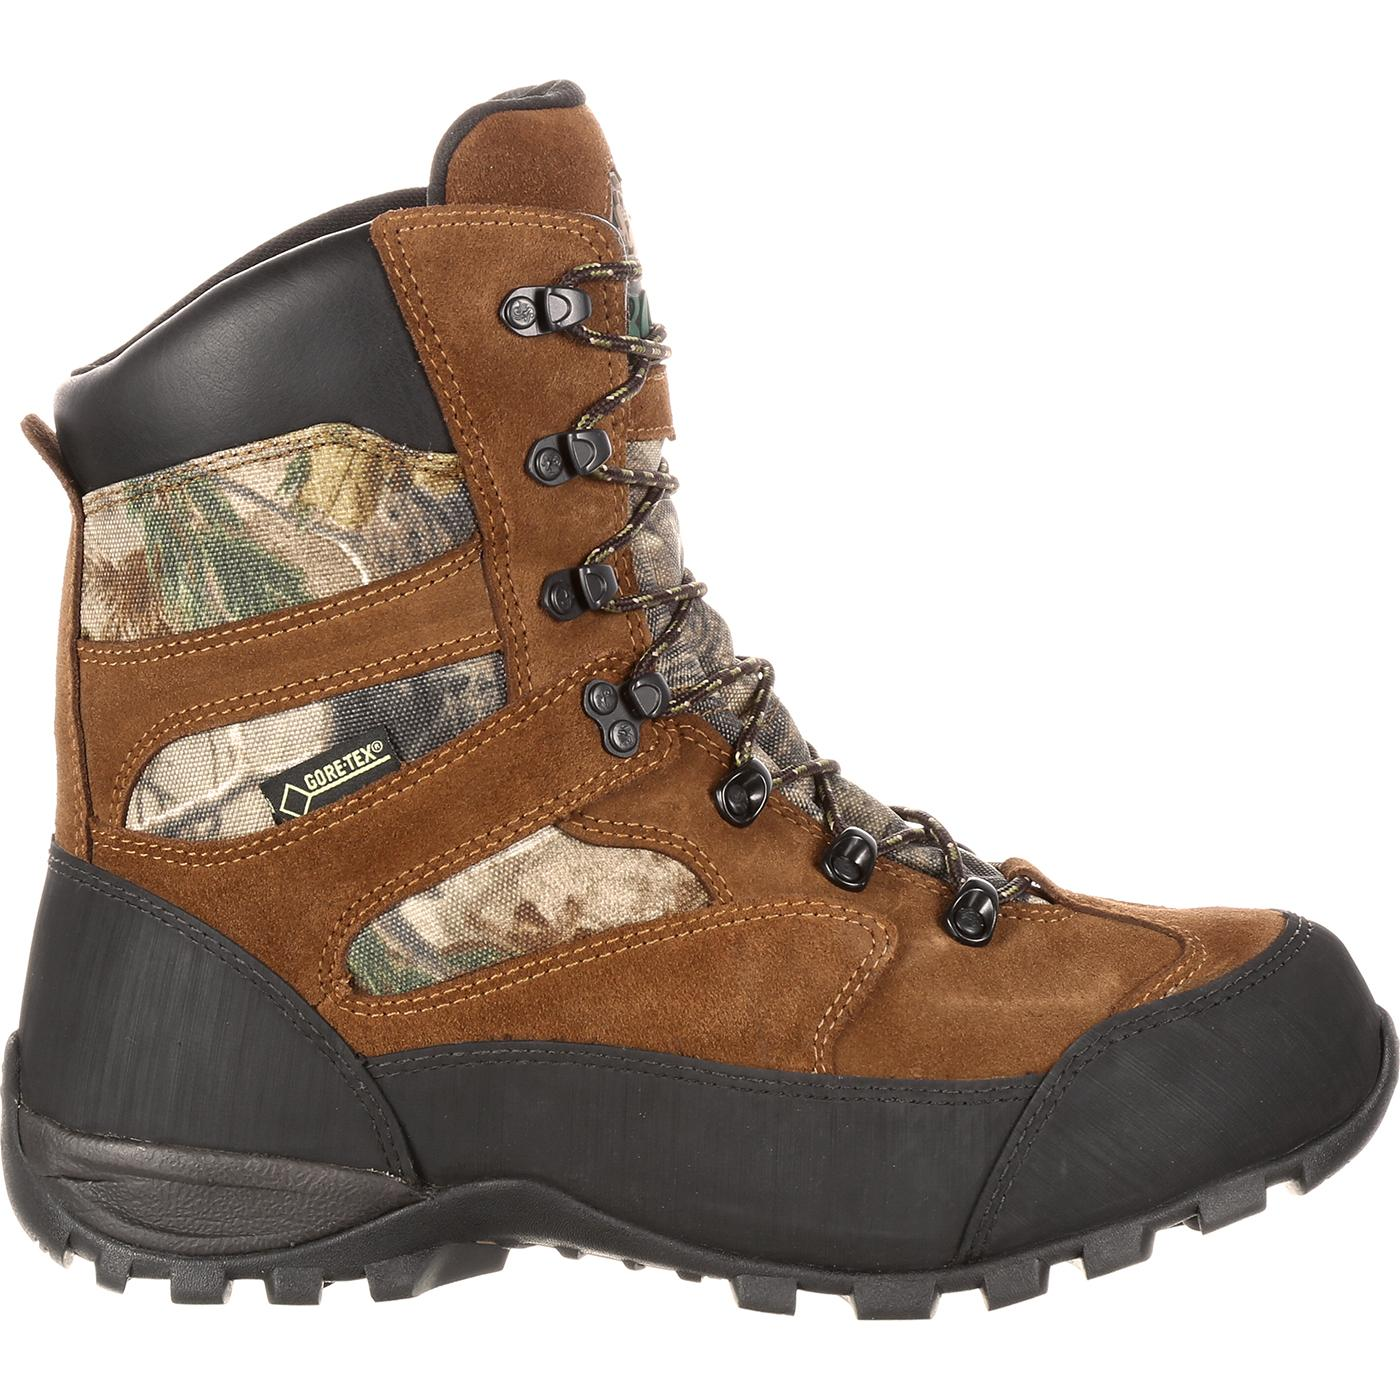 Rocky Boots: GORE-TEX Waterproof Insulated Outdoor Boot